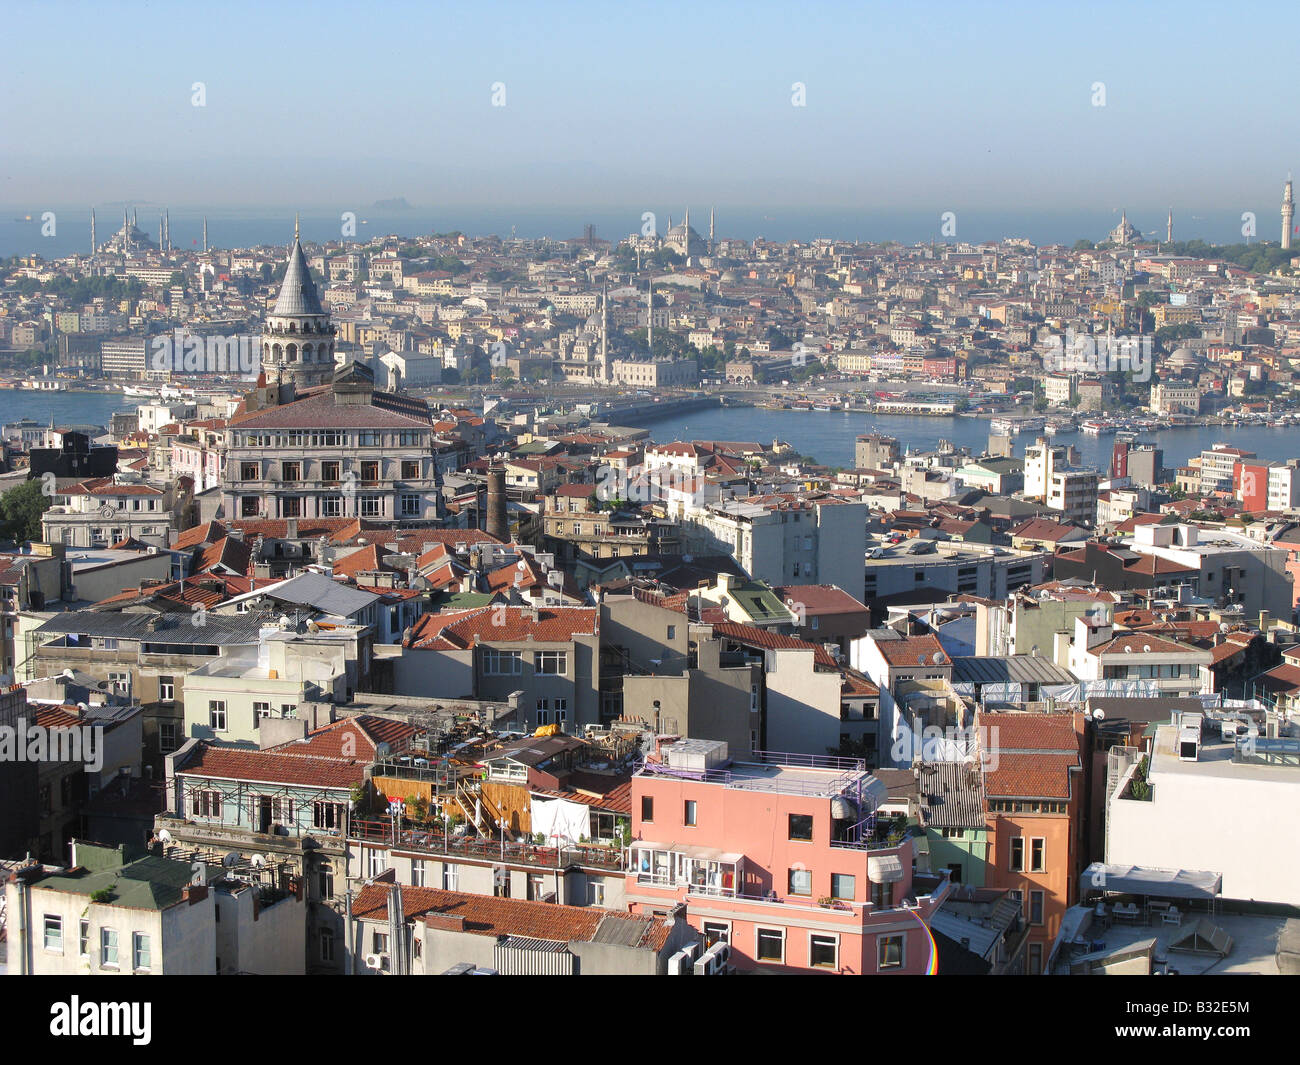 ISTANBUL. View over the Pera and Galata districts of Beyoglu towards the Golden Horn and the bazaar area of the - Stock Image